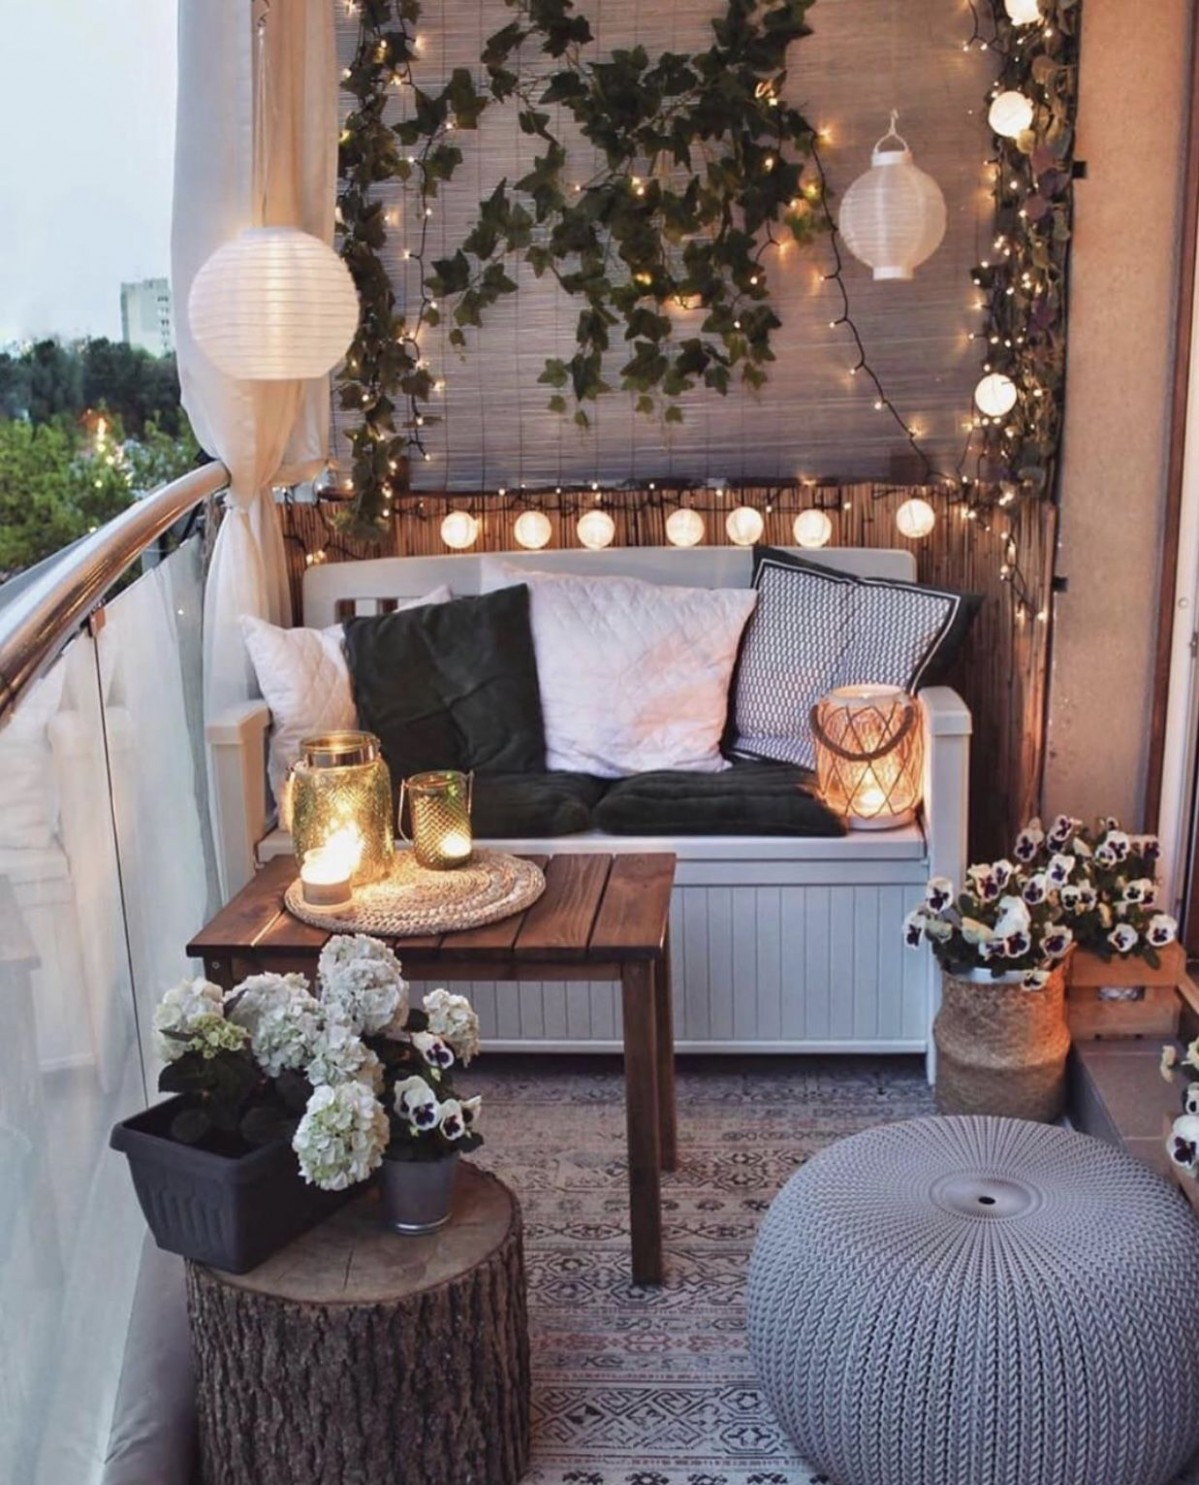 11 Gorgeous Home Decor Ideas You Will Want to Copy  Chaylor  - Decorating Apartment Balcony Ideas